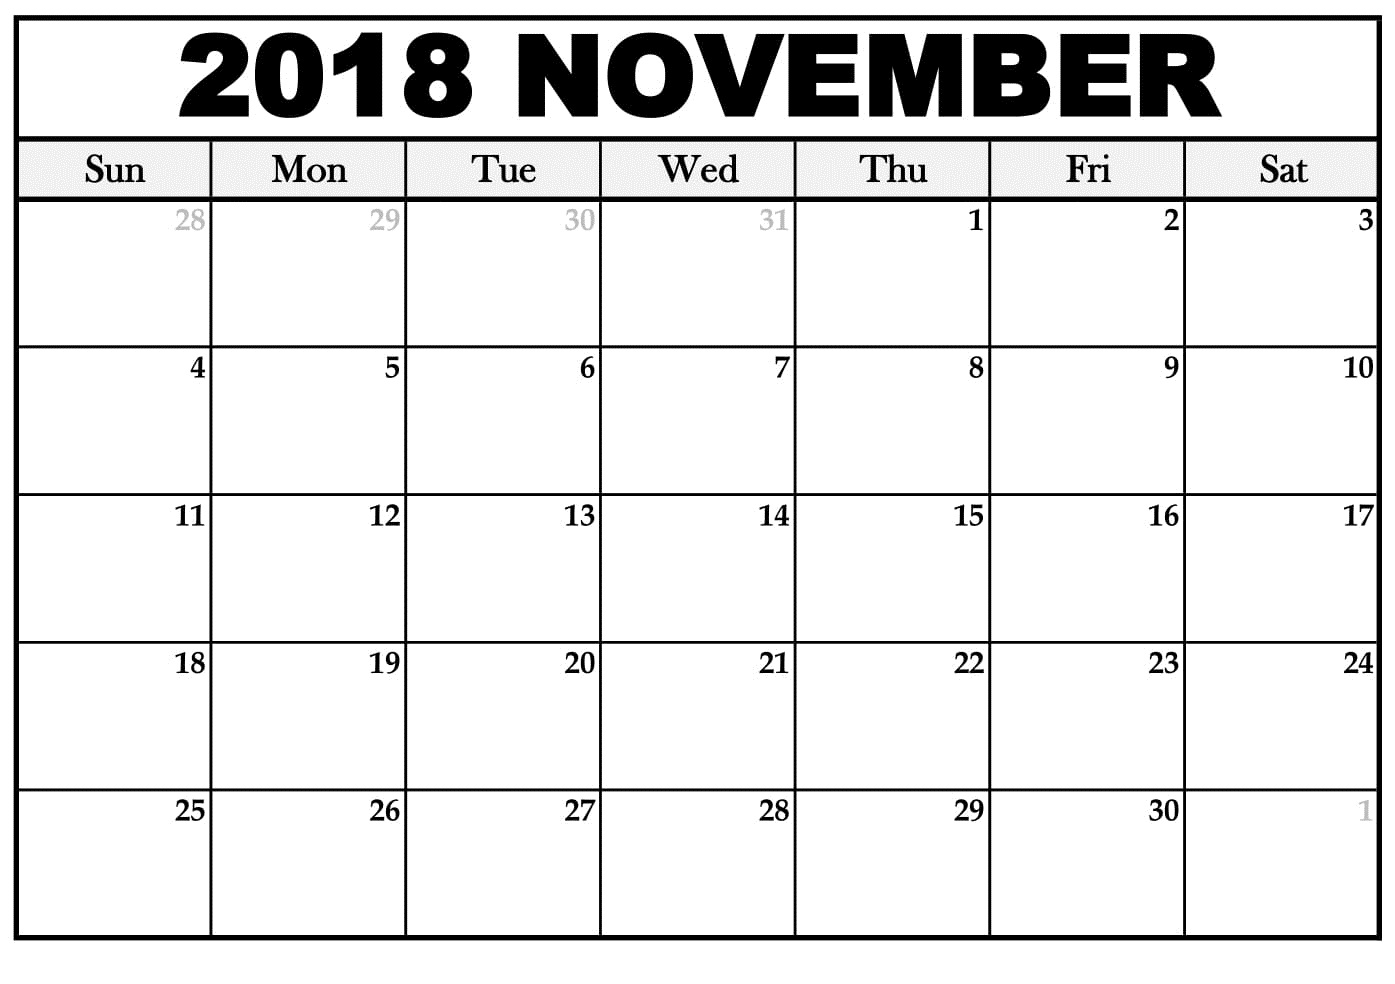 November 2018 Calendar PDF Document